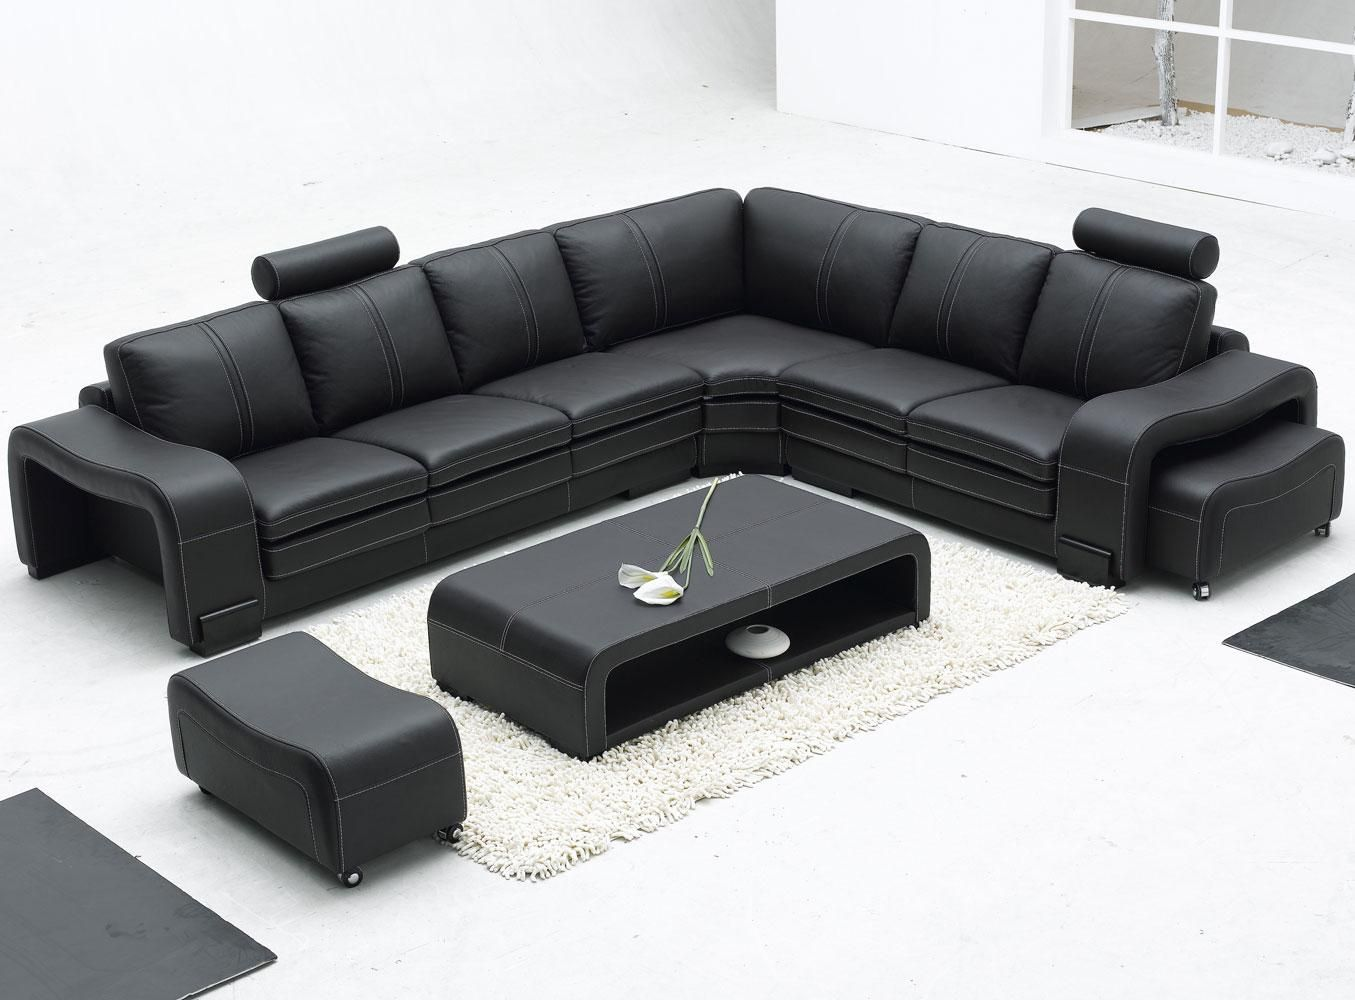 Awesome Sectional Leather Sofa New 56 For Your Room Ideas With